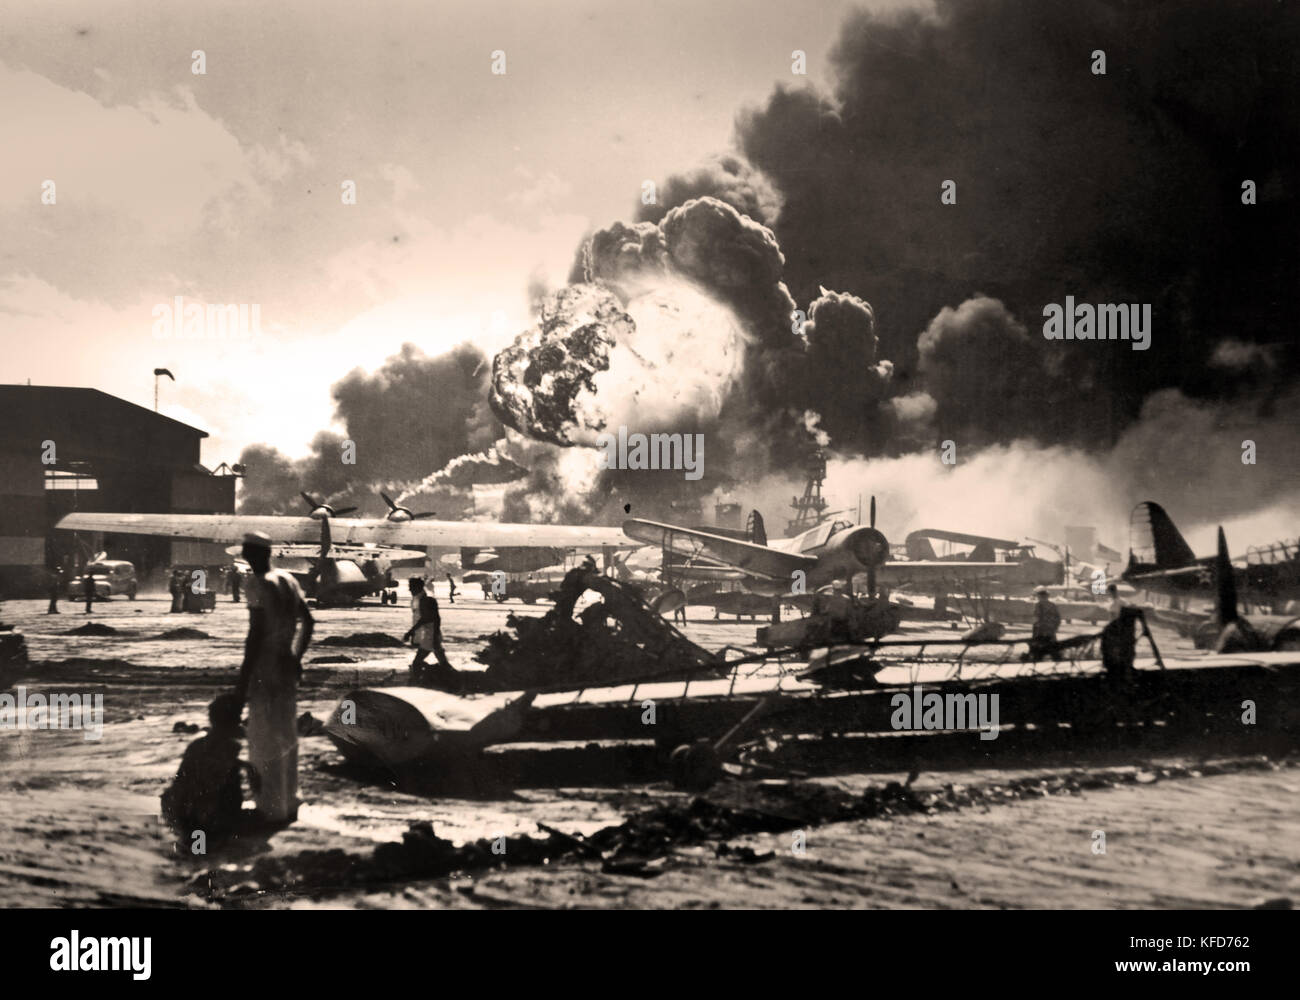 The attack on Pearl Harbor was a surprise military strike by the Imperial Japanese Navy Air Service against the - Stock Image